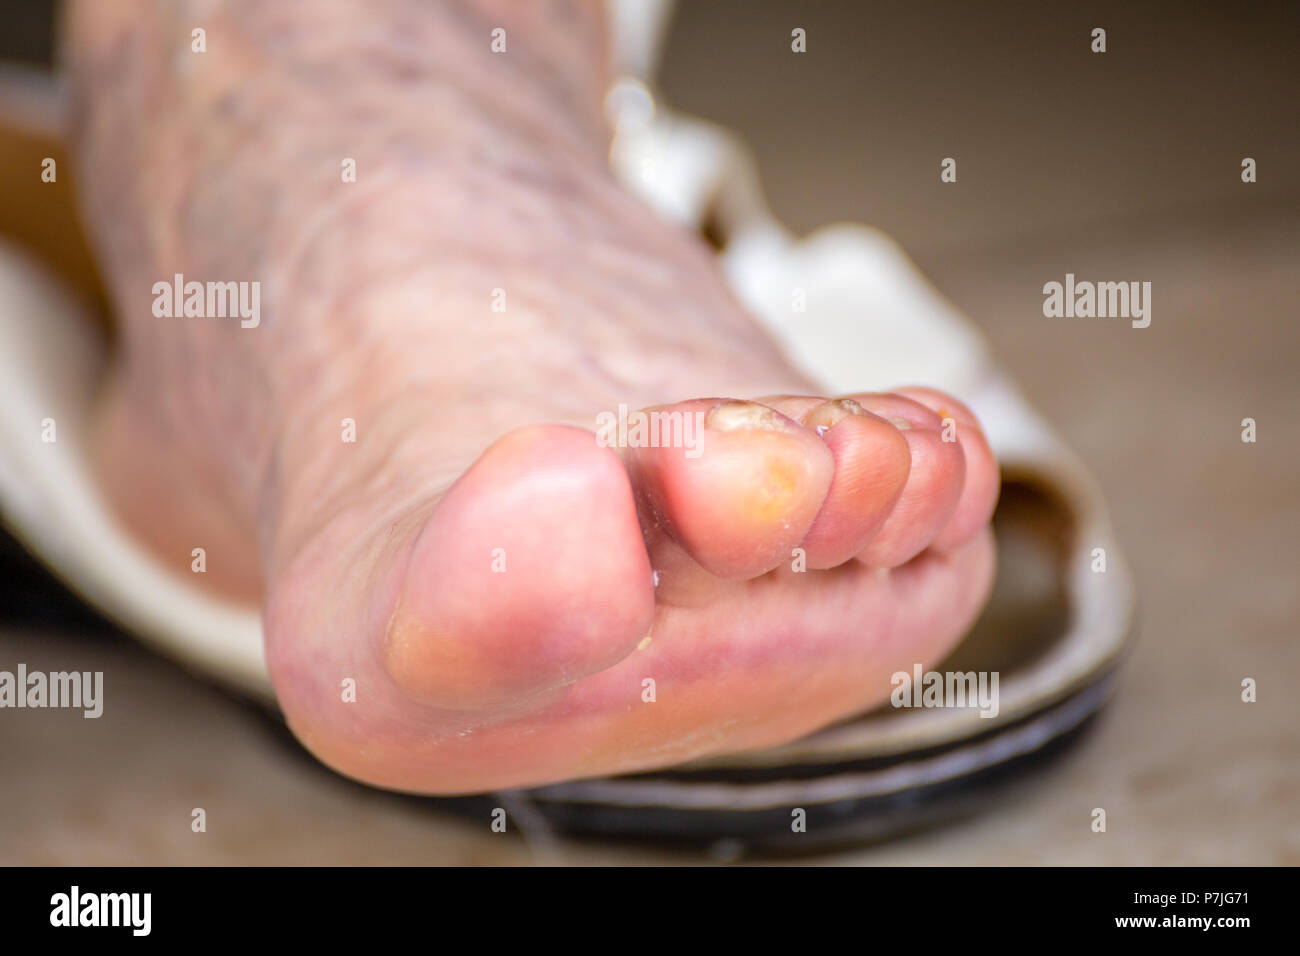 Illice finger with whitlow in foot of elderly woman with